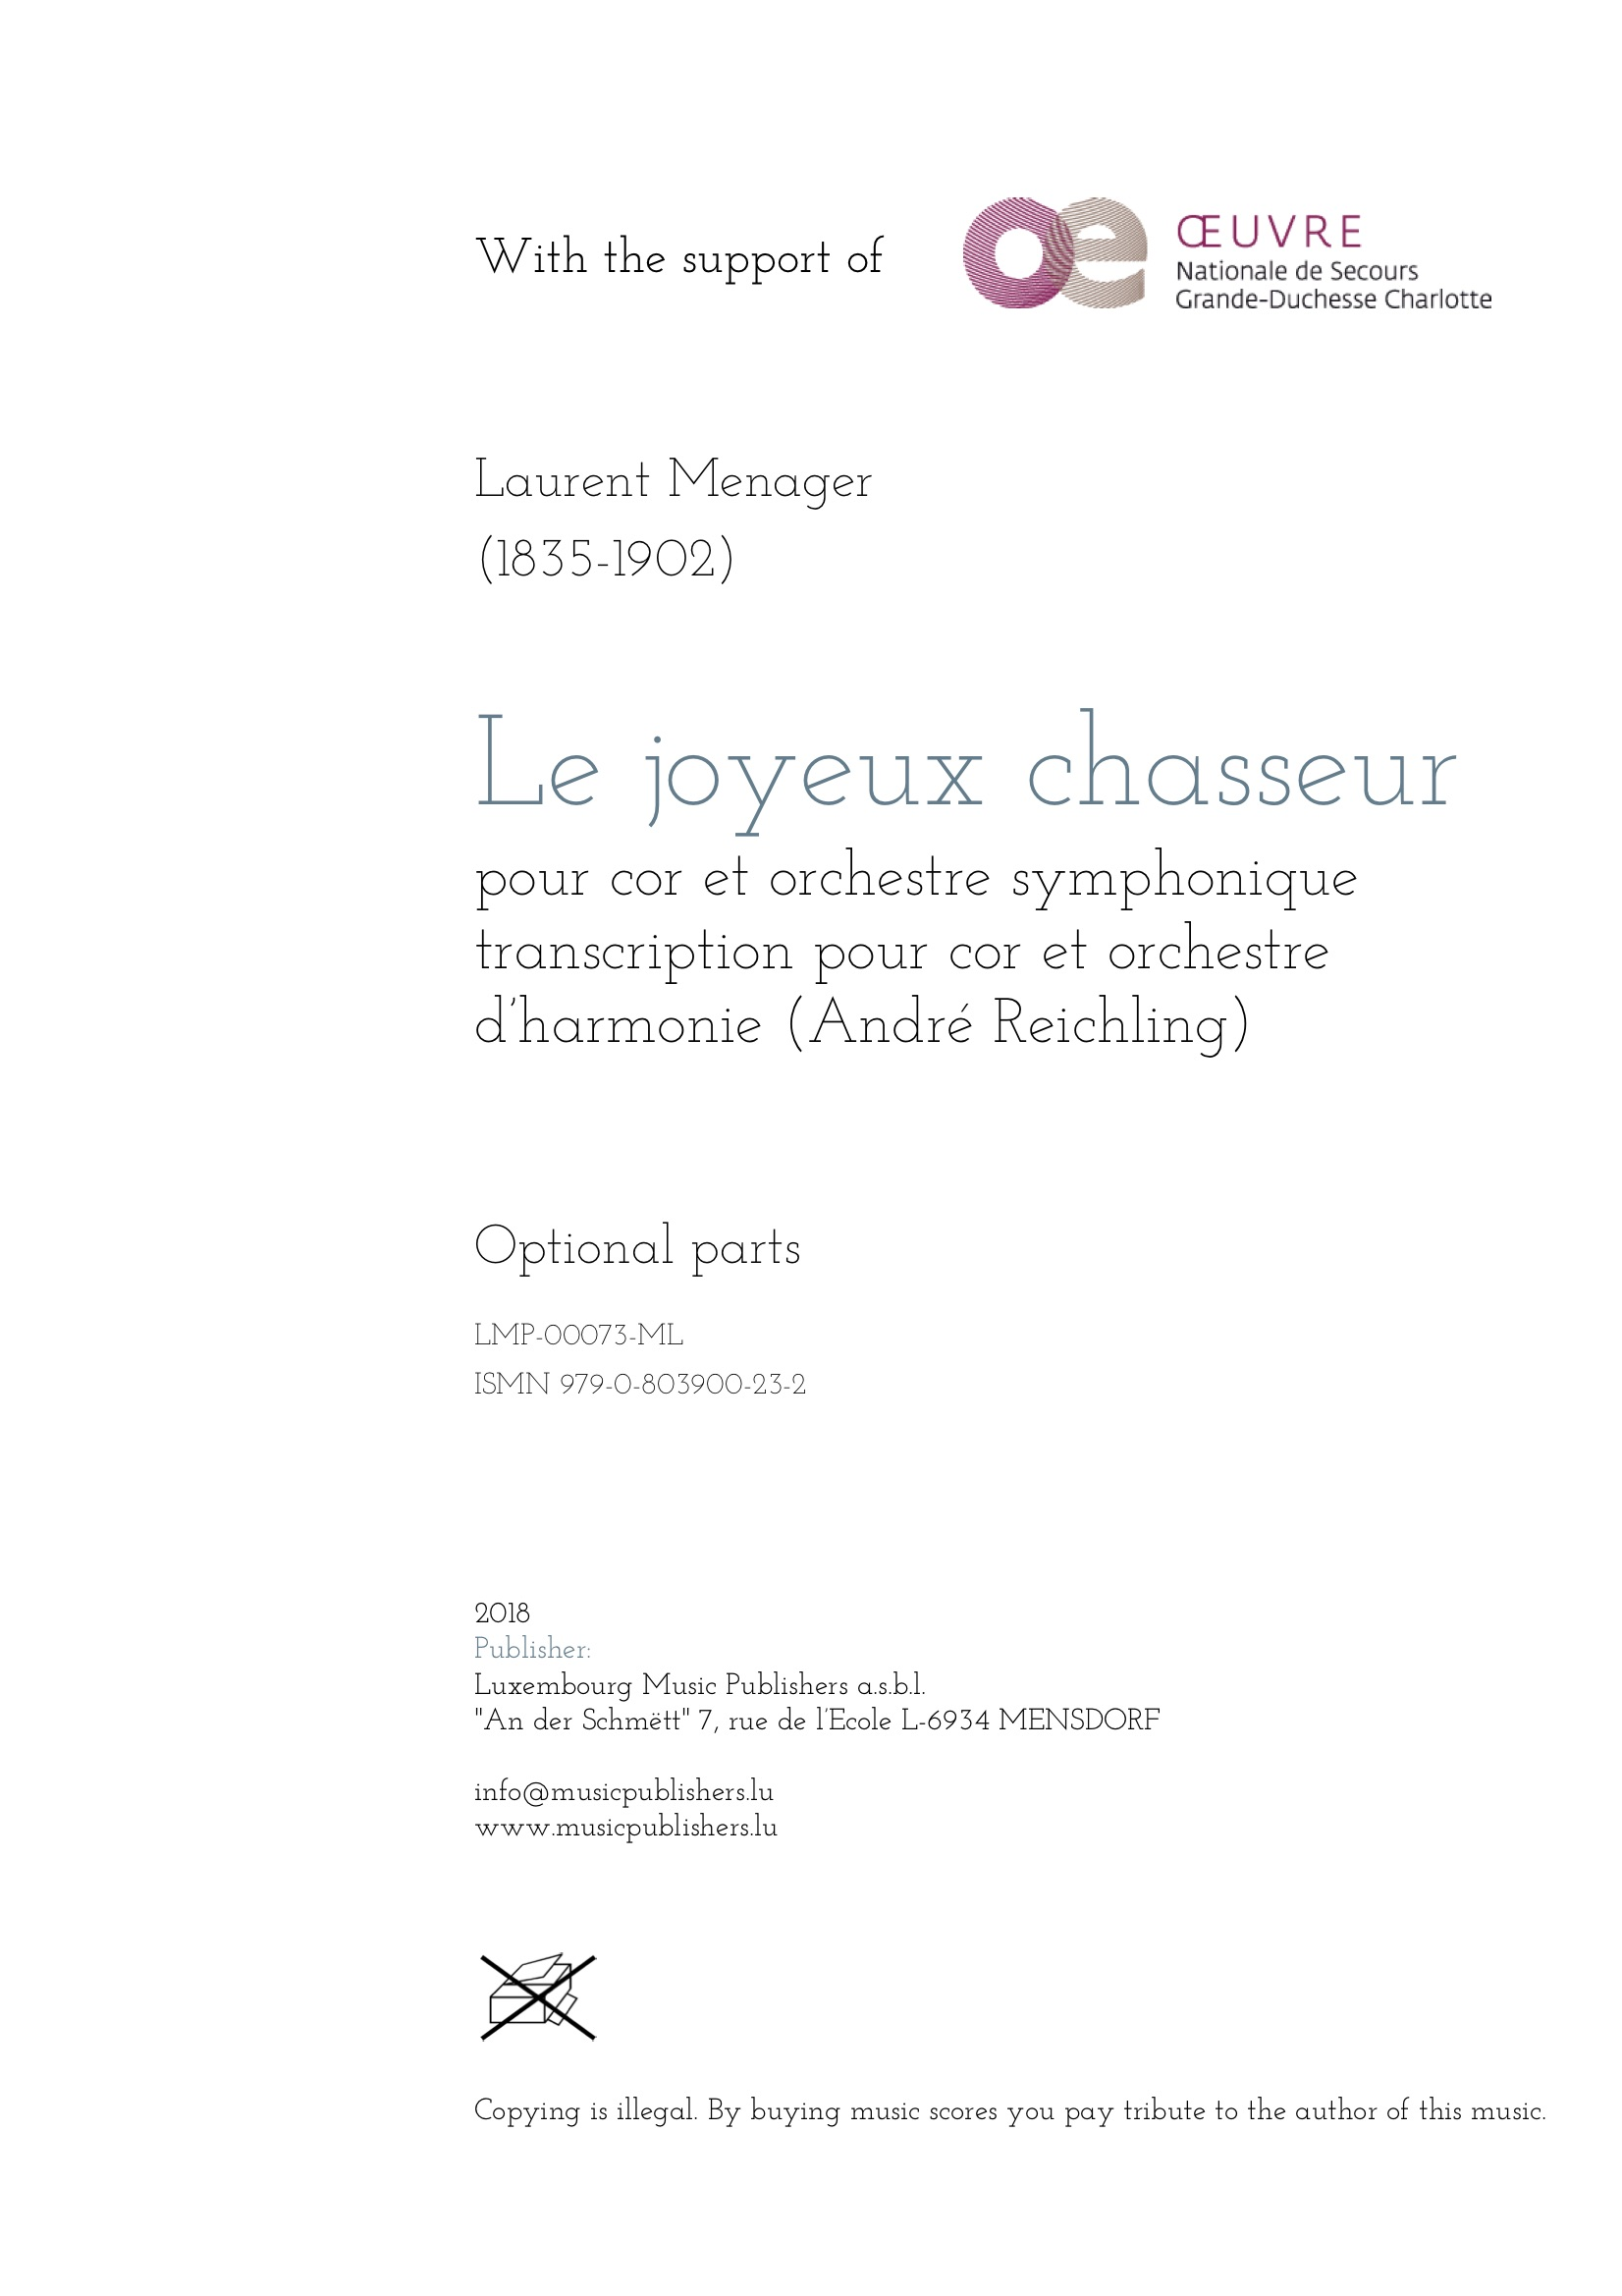 Le joyeux chasseur. Sheet Music by Laurent Menager, composer. Arranged by André Reichling, conductor. Music for horn solo and symphonic wind orchestra. Music for solo instrument and wind orchestra/band. Optional parts.